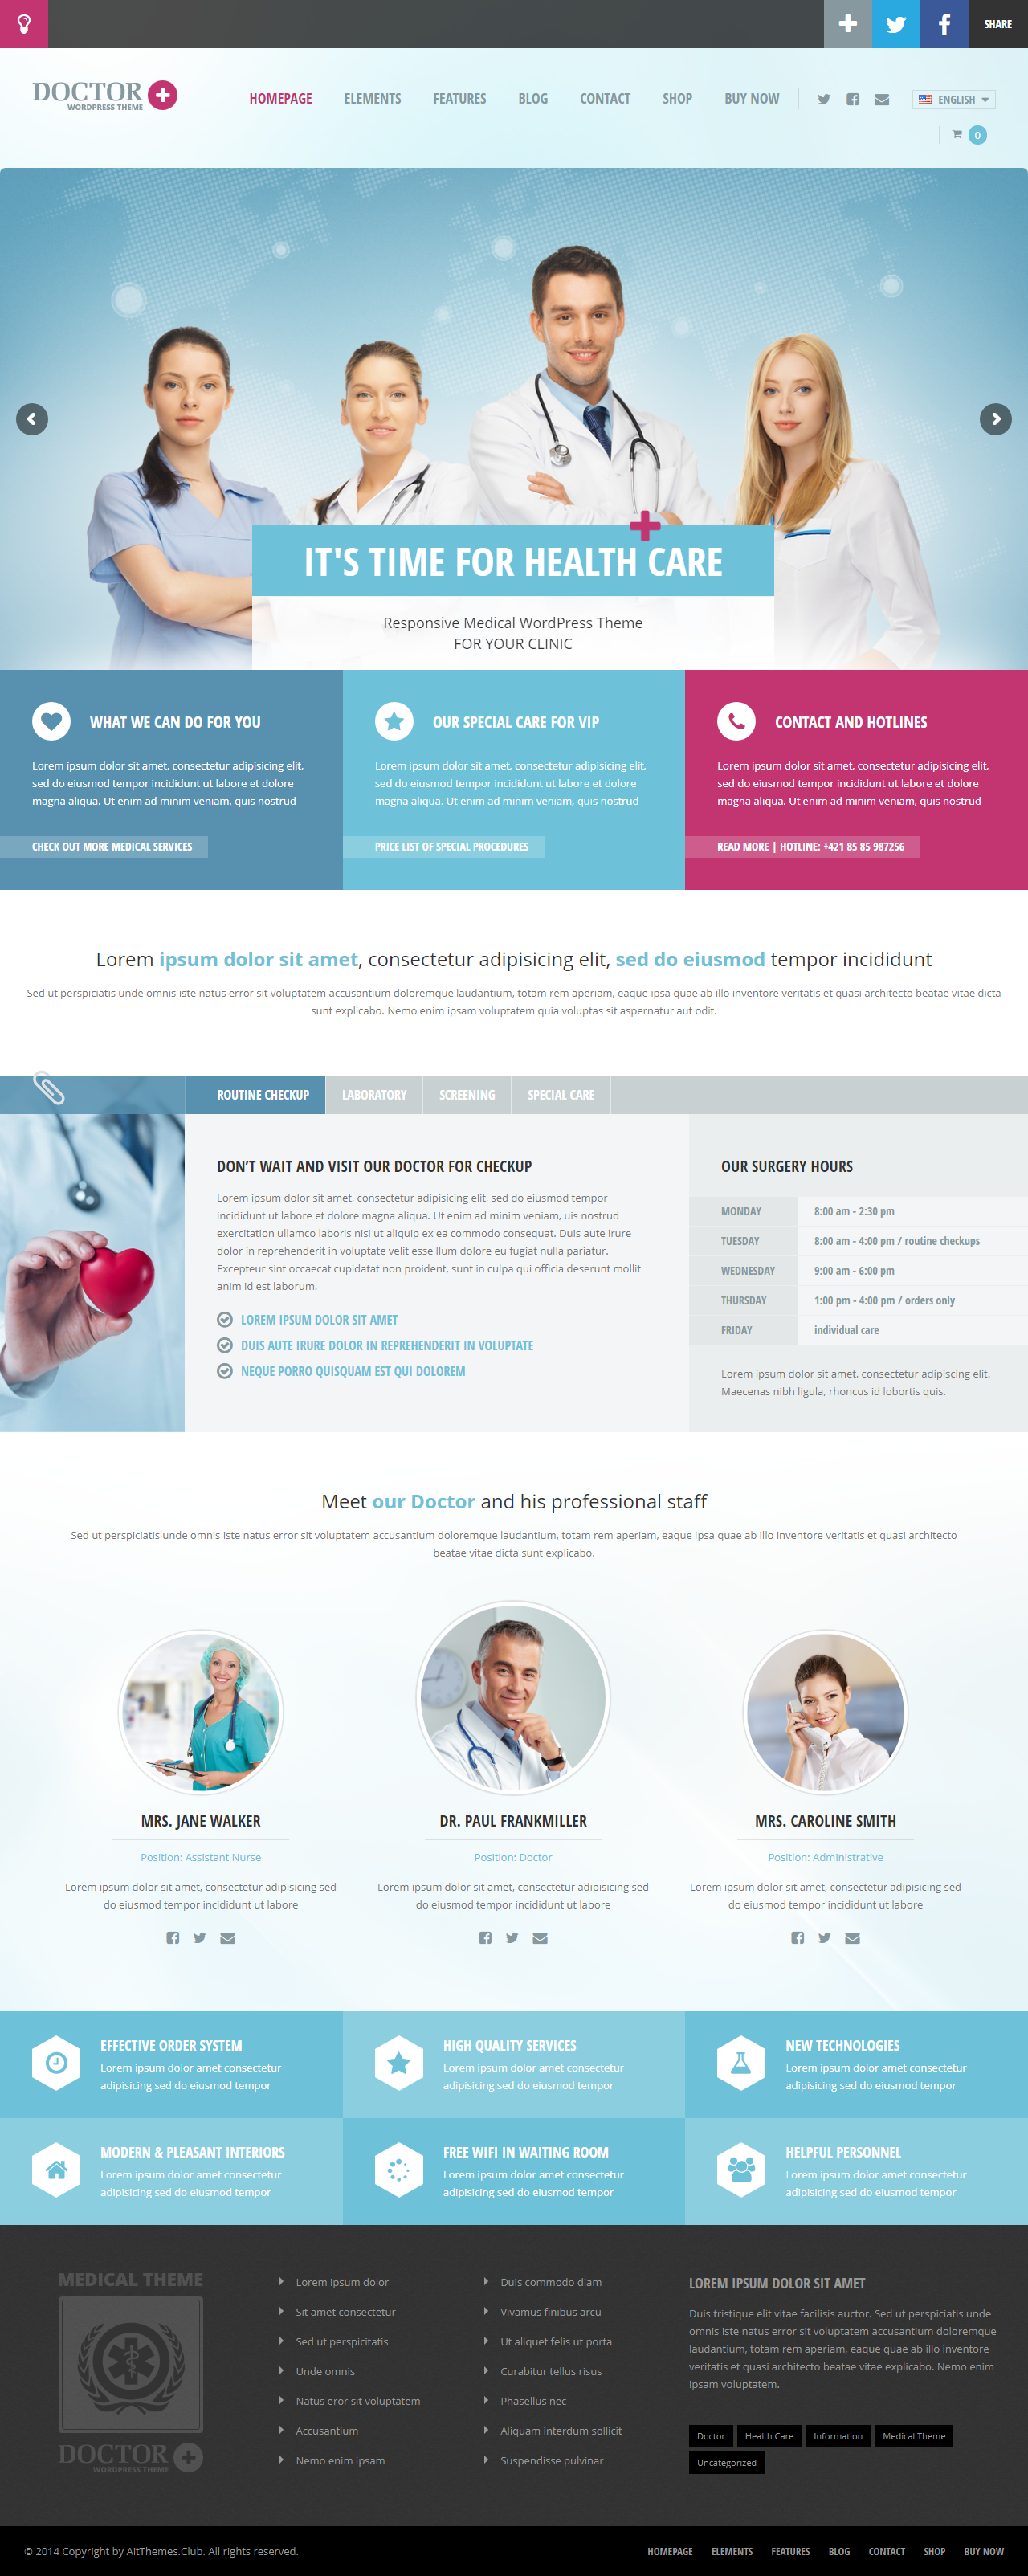 web design services in pune Web Design Services in Pune medical wordpress theme